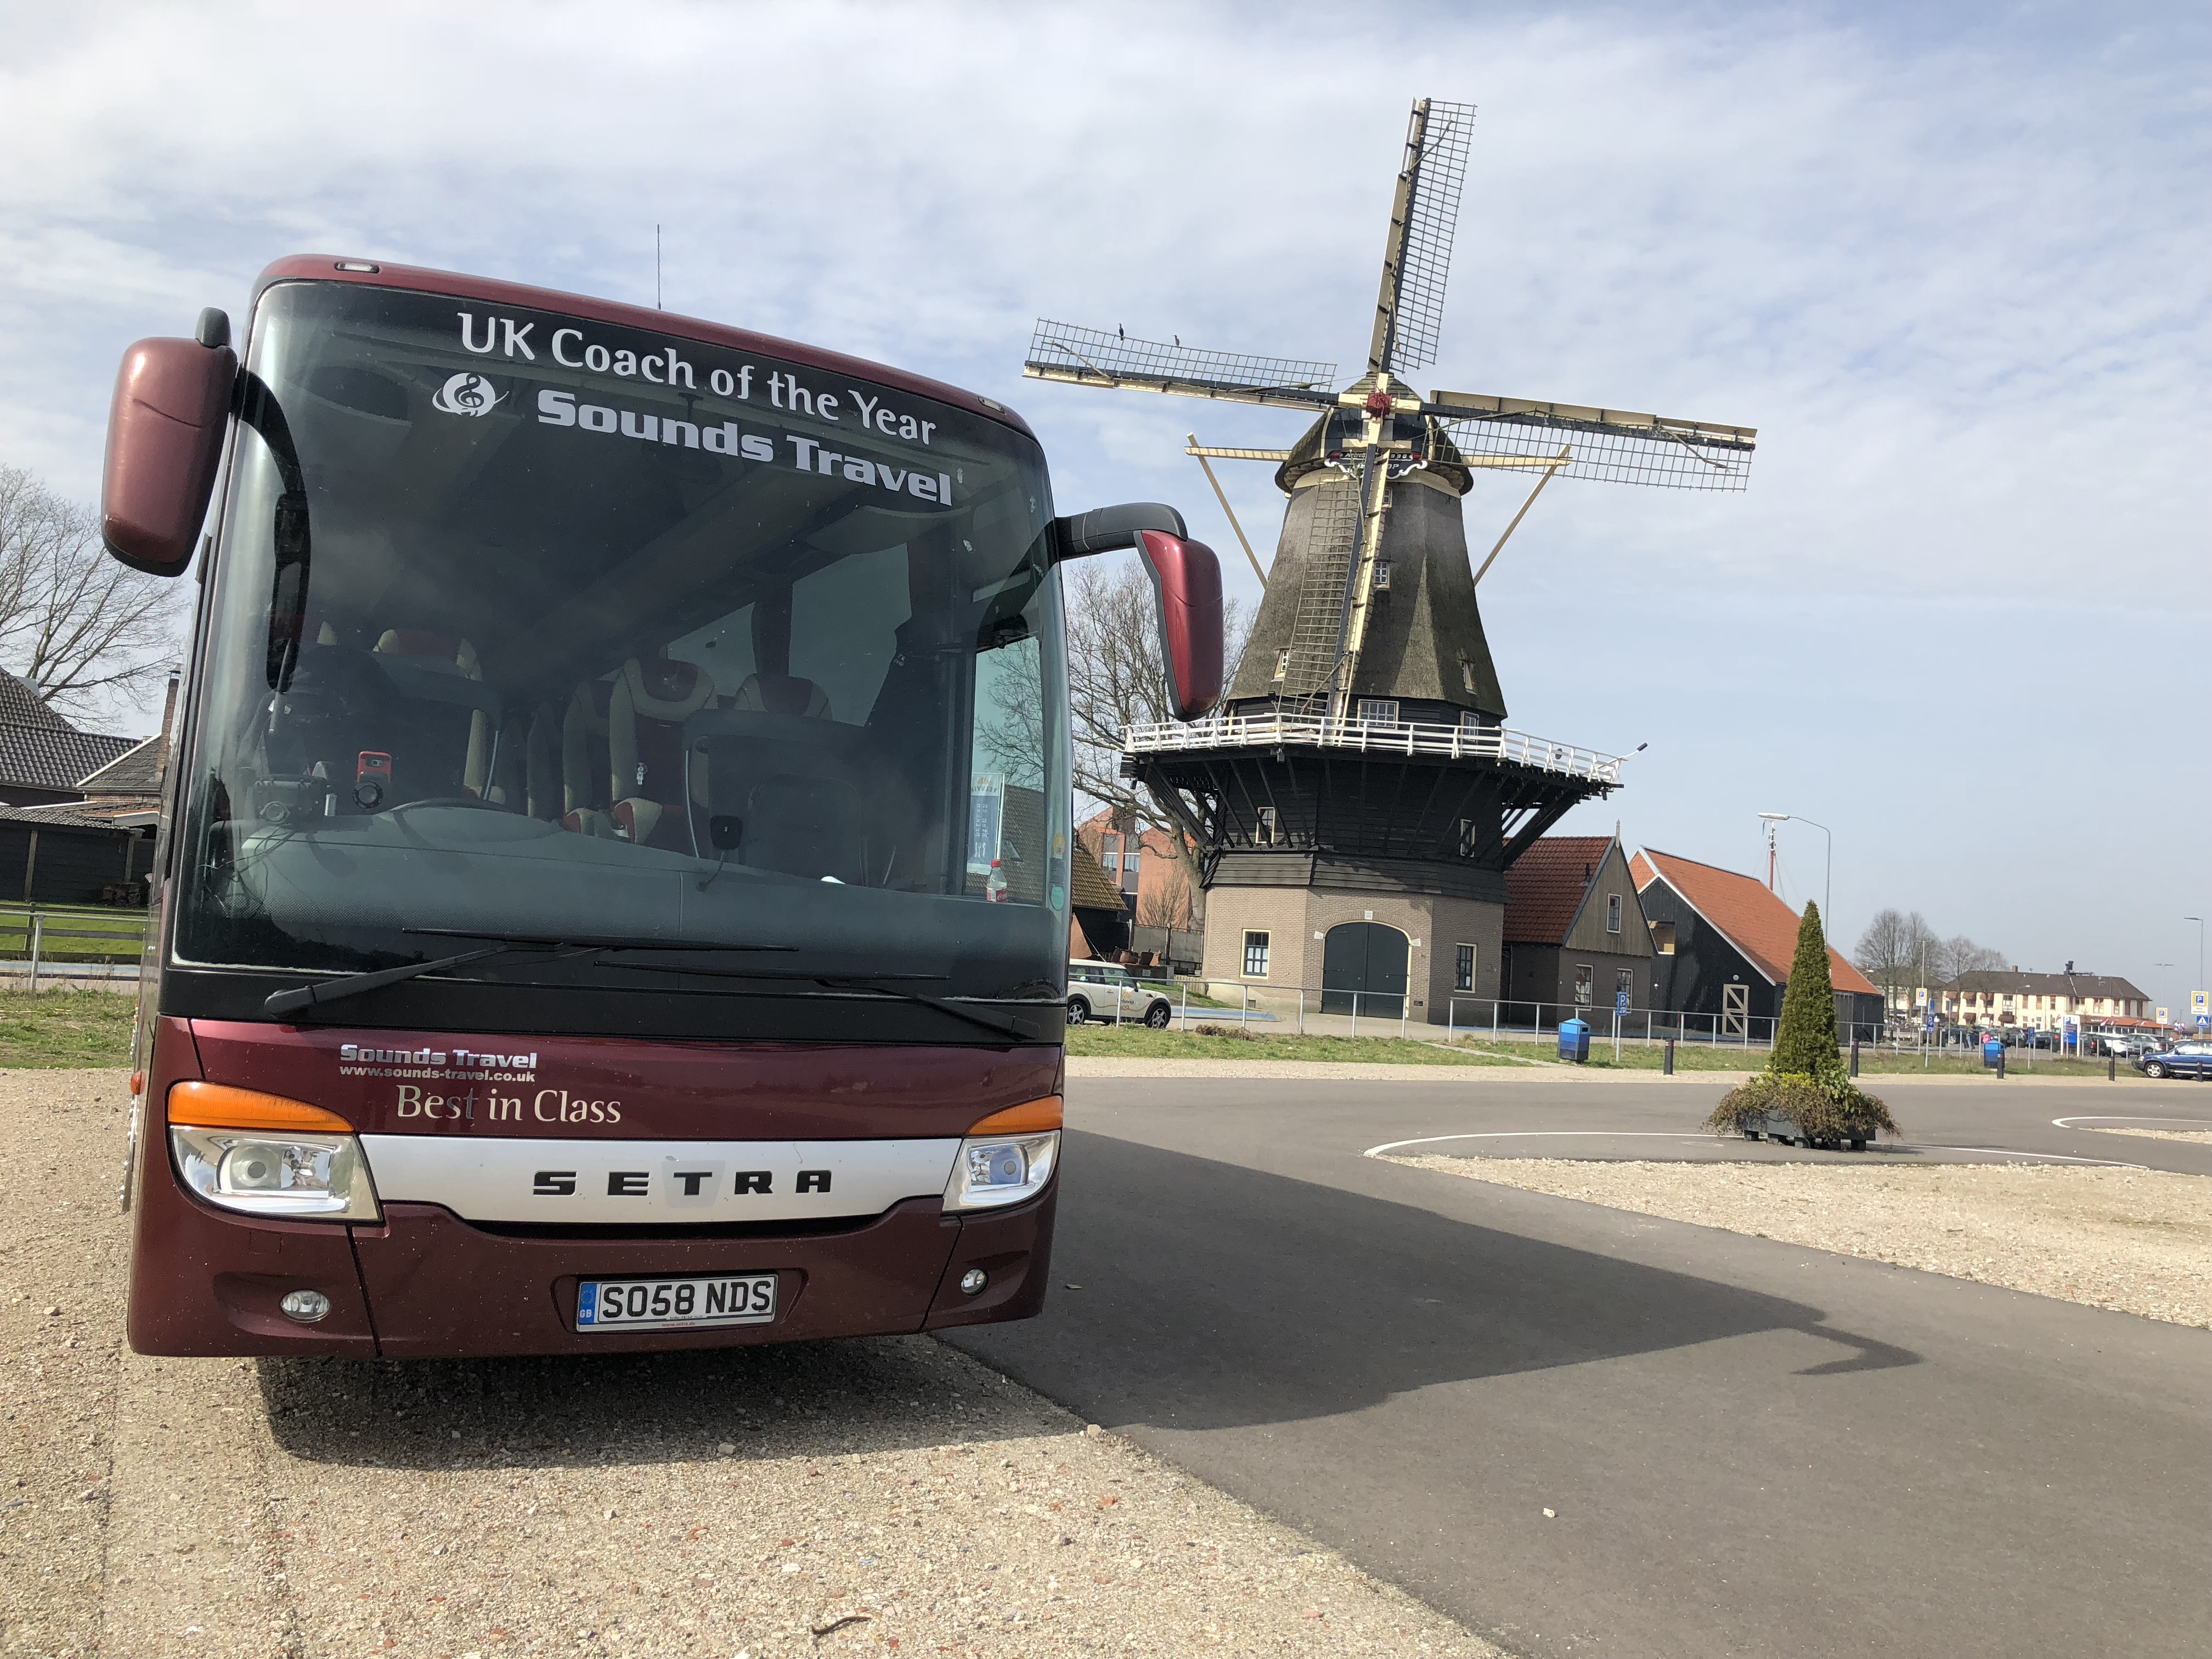 Sounds Travel Coach next to Dutch Windmill